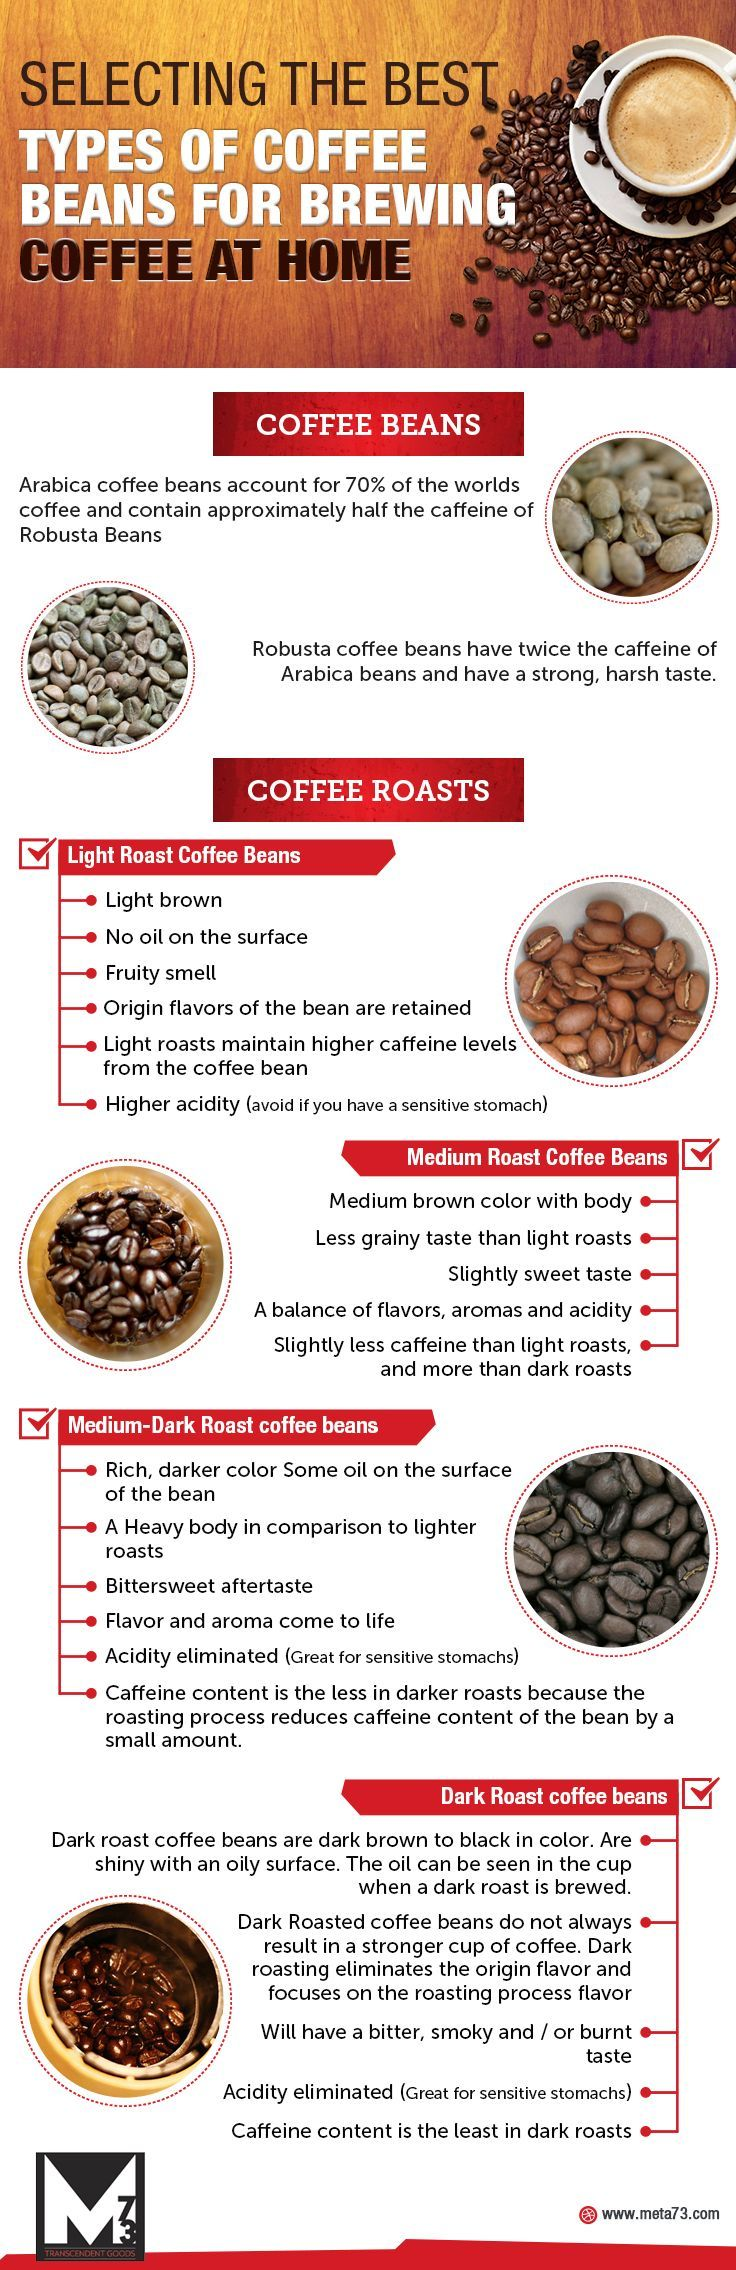 The best types of Coffee Beans for brewing Coffee at Home